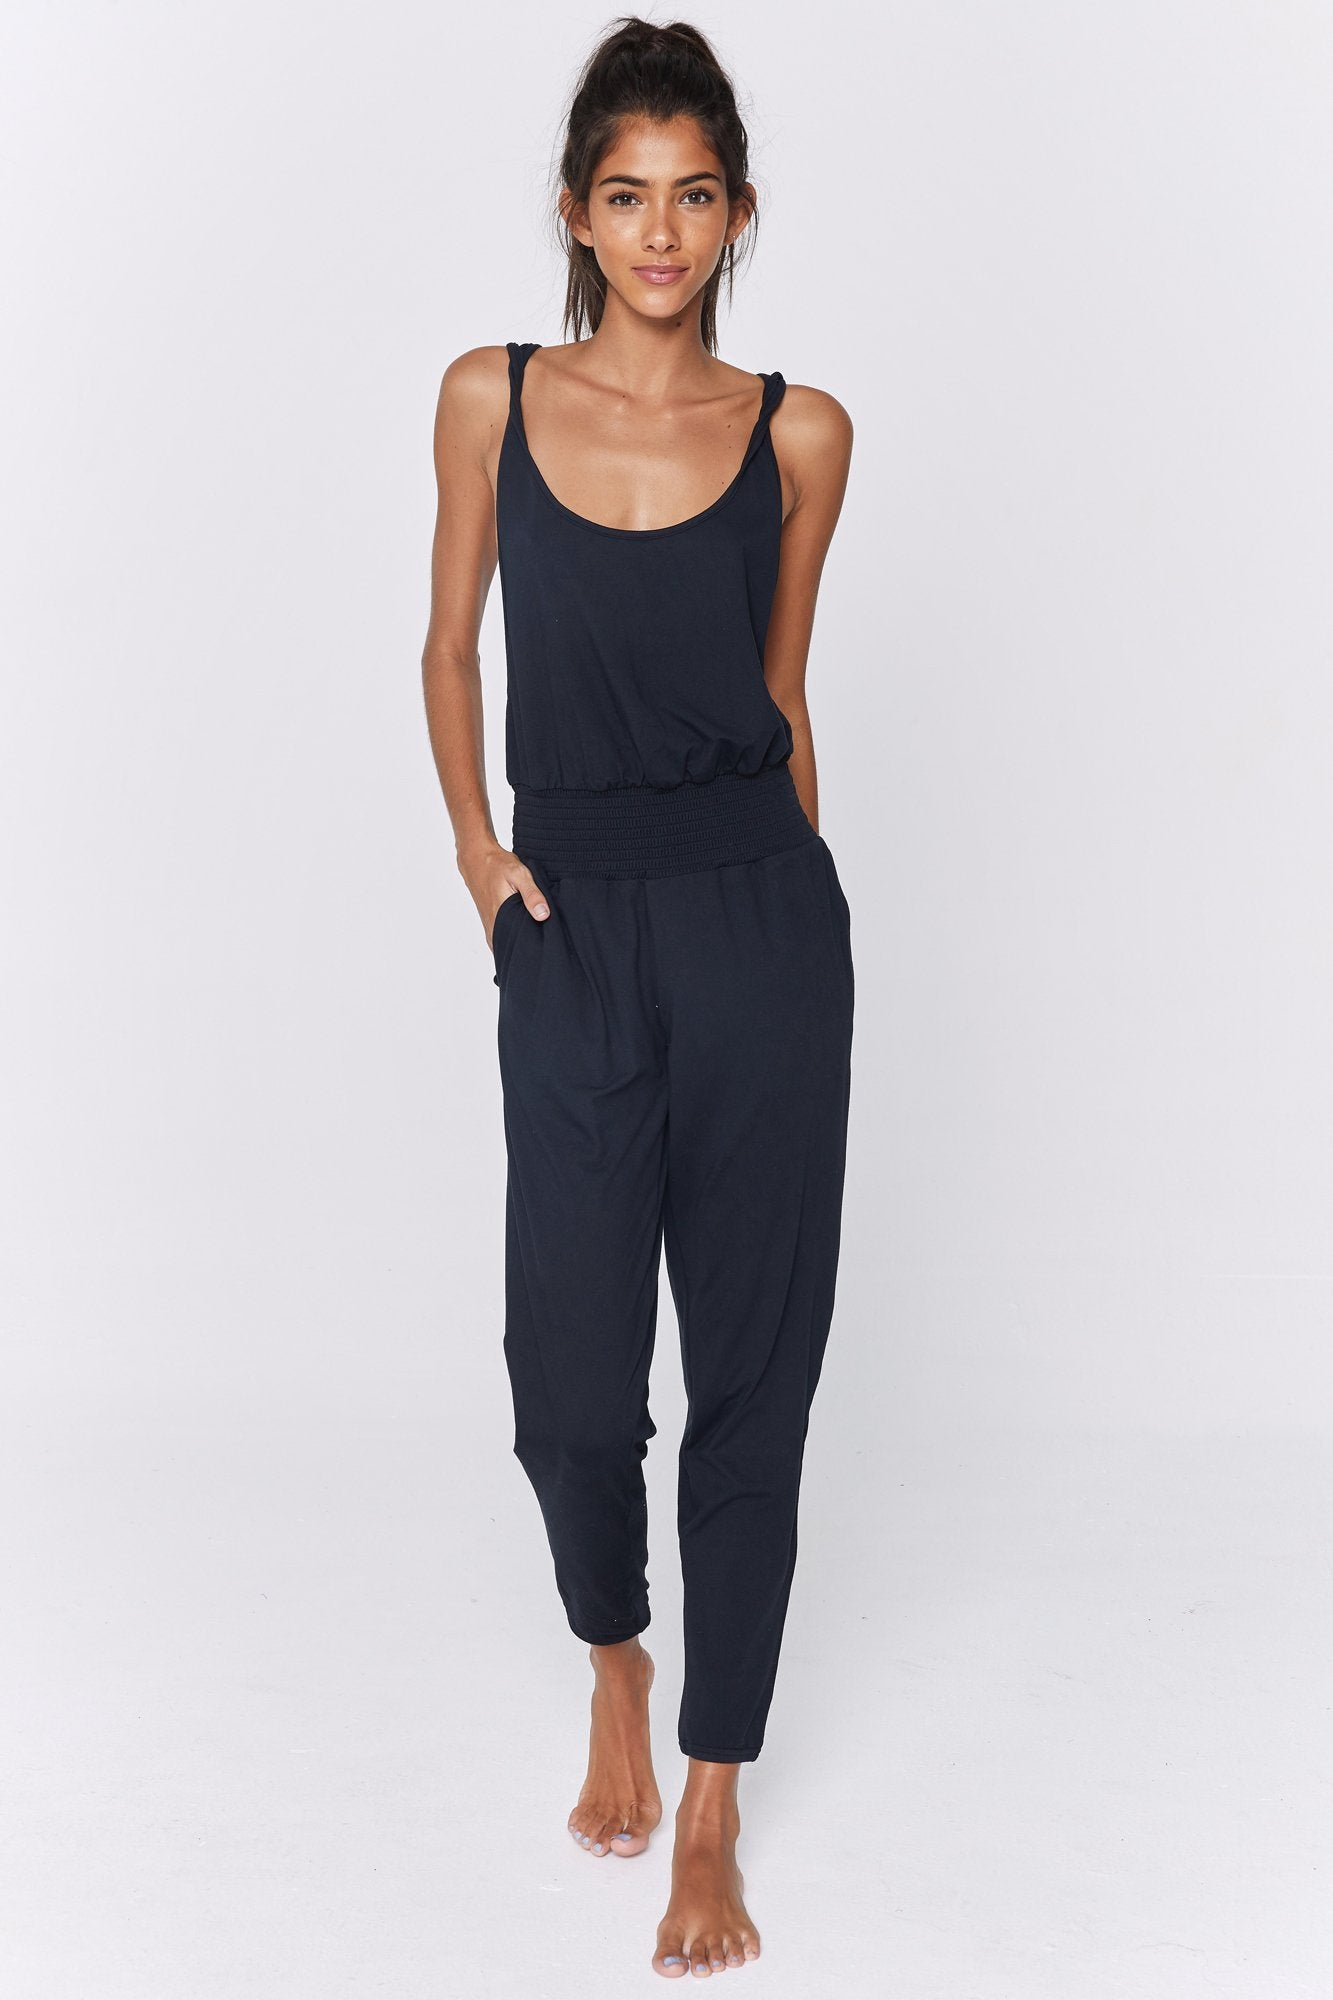 Front view of model wearing a one-piece, sleeveless jumpsuit in a black flowy and stretchy fabric. The jumpsuit features half-inch straps, a scoop neck, side slit pockets, an elastic waist, tapered pants, and an elastic cuff around the ankle.